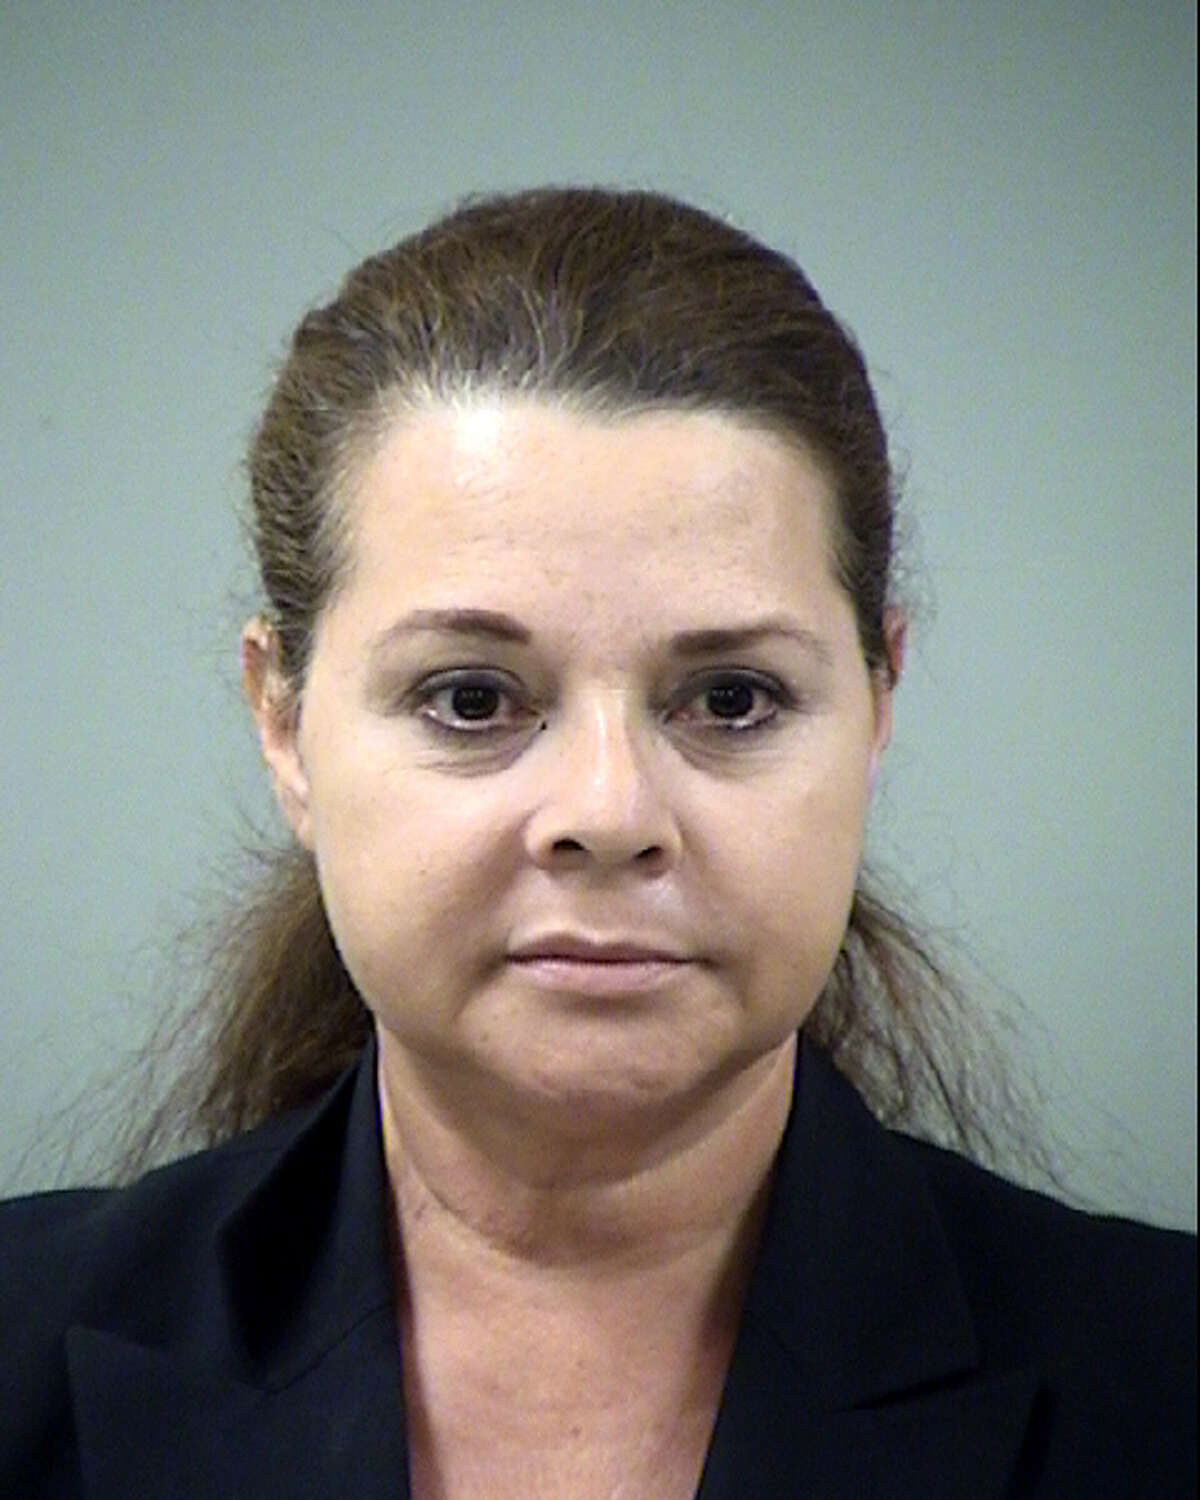 Hilda Valadez is seen in an Aug. 23, 2012 Bexar County Sheriff's Department booking mug taken after she was charged with 46 felony counts that include forging judges' signatures and double-billing the county.